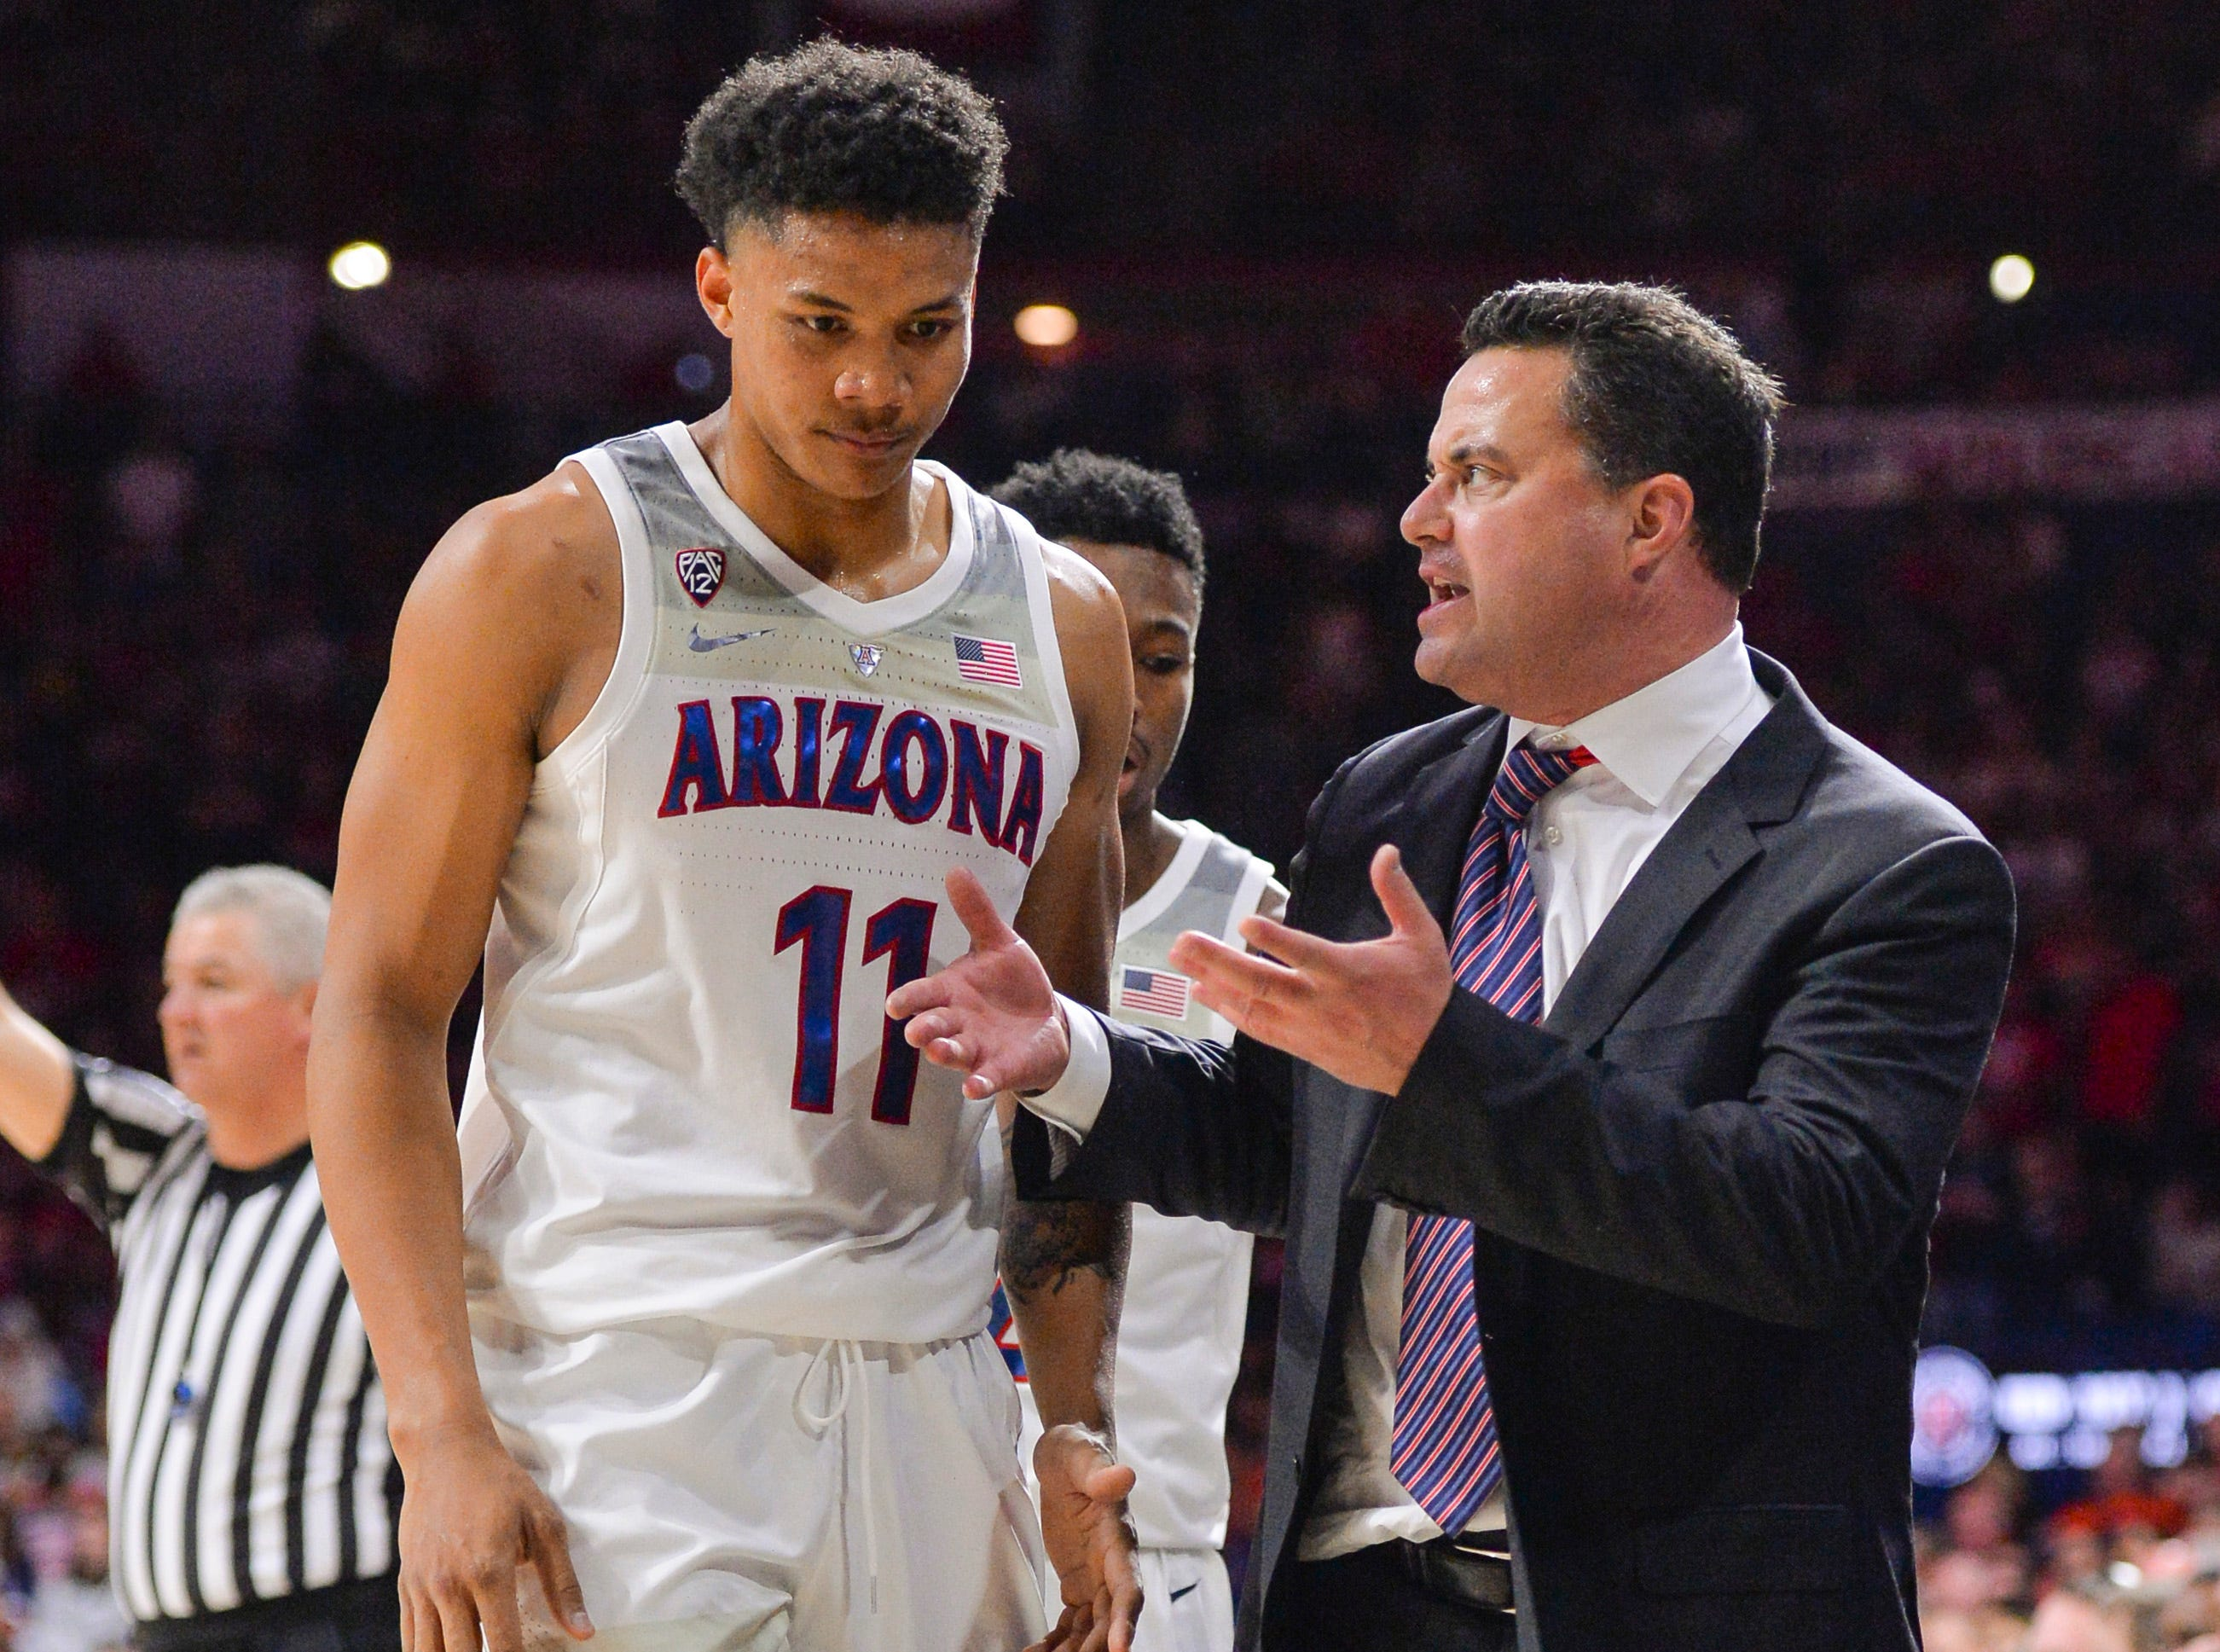 Jan 19, 2019; Tucson, AZ, USA; Arizona Wildcats head coach Sean Miller talks to forward Ira Lee (11) during the first half against the Oregon State Beavers at McKale Center. Mandatory Credit: Casey Sapio-USA TODAY Sports